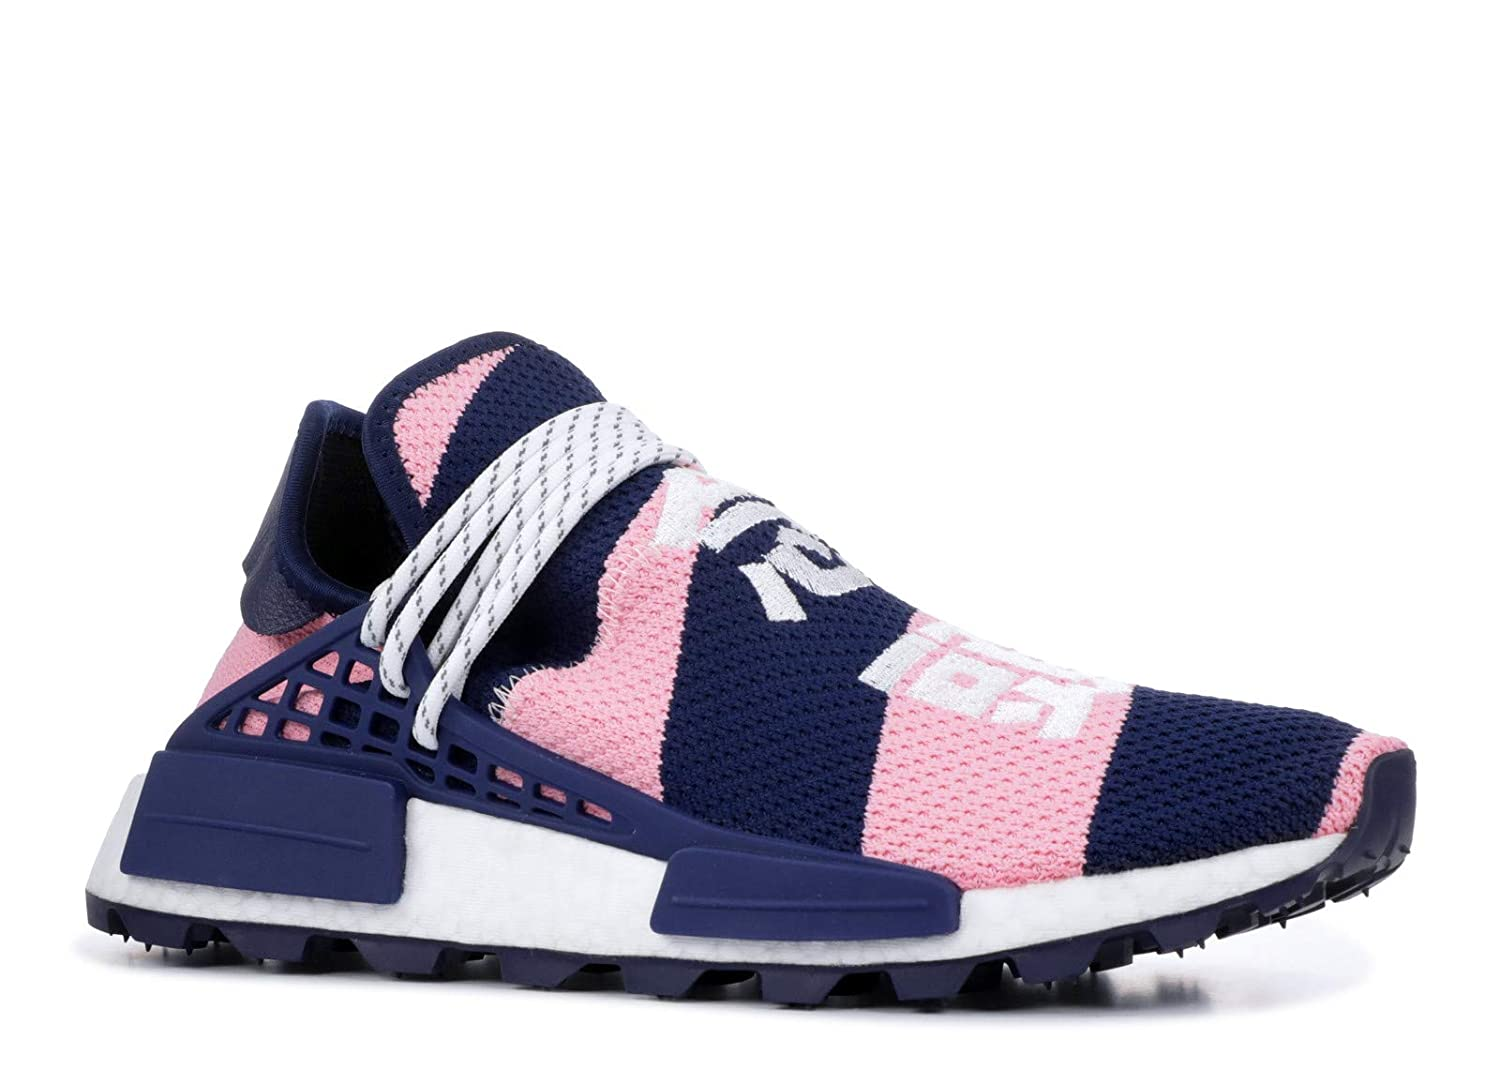 uk availability fd35e ff49e Amazon.com | Pharrell X BBC HU NMD 'Heart/Mind' - G26277 ...